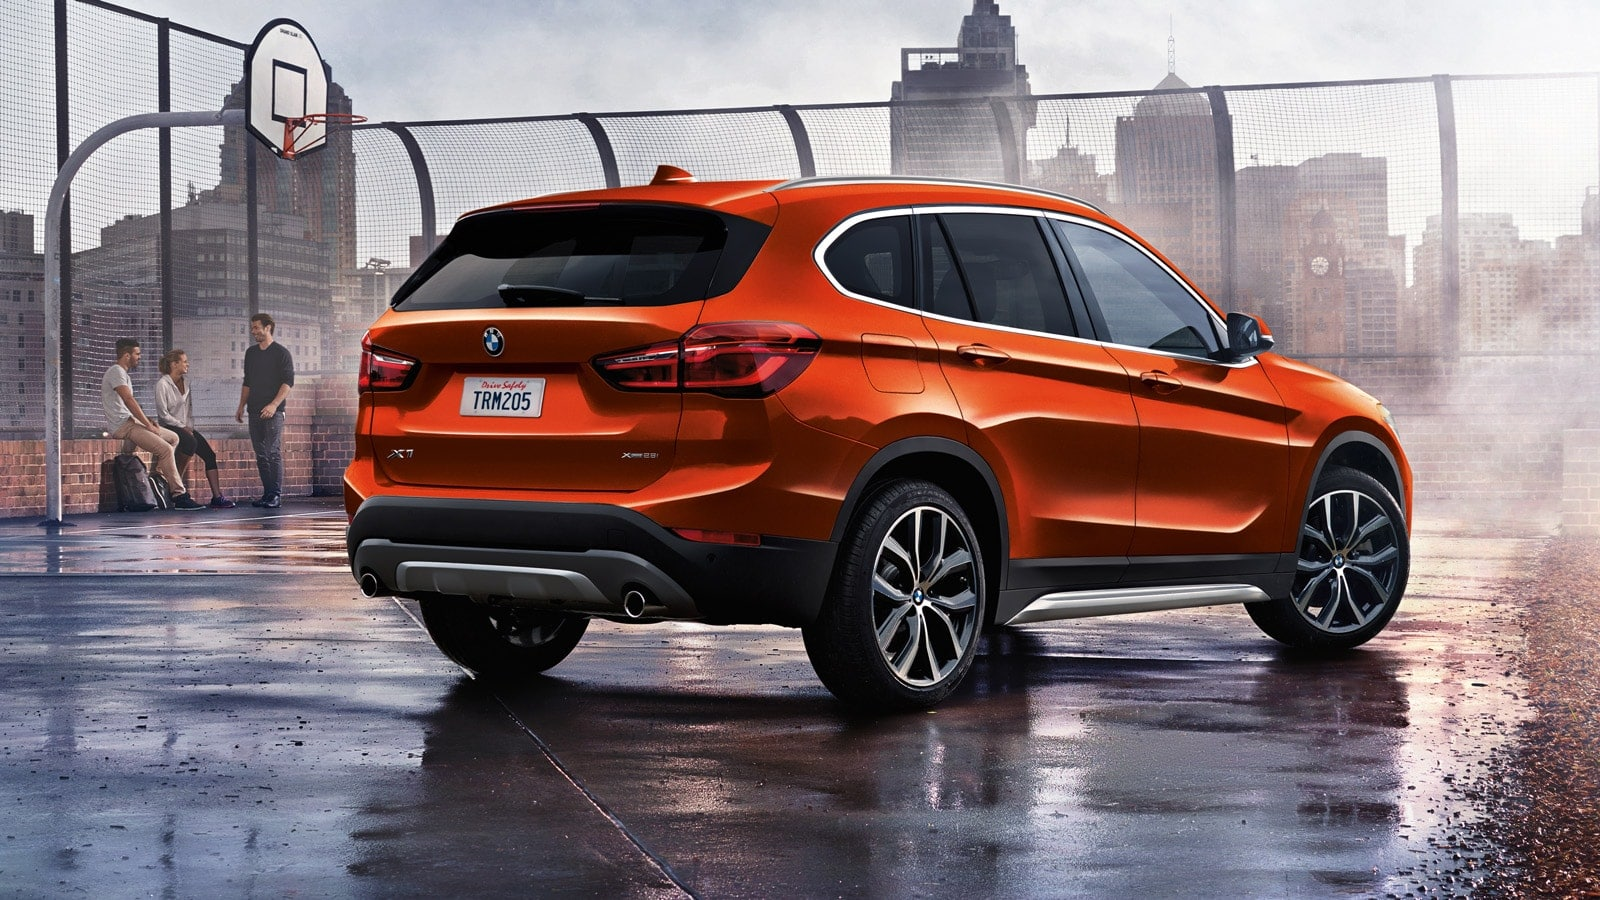 bmw x1 lease offers in endicott ny near binghamton ny elmira ny corning ny ithaca ny and. Black Bedroom Furniture Sets. Home Design Ideas